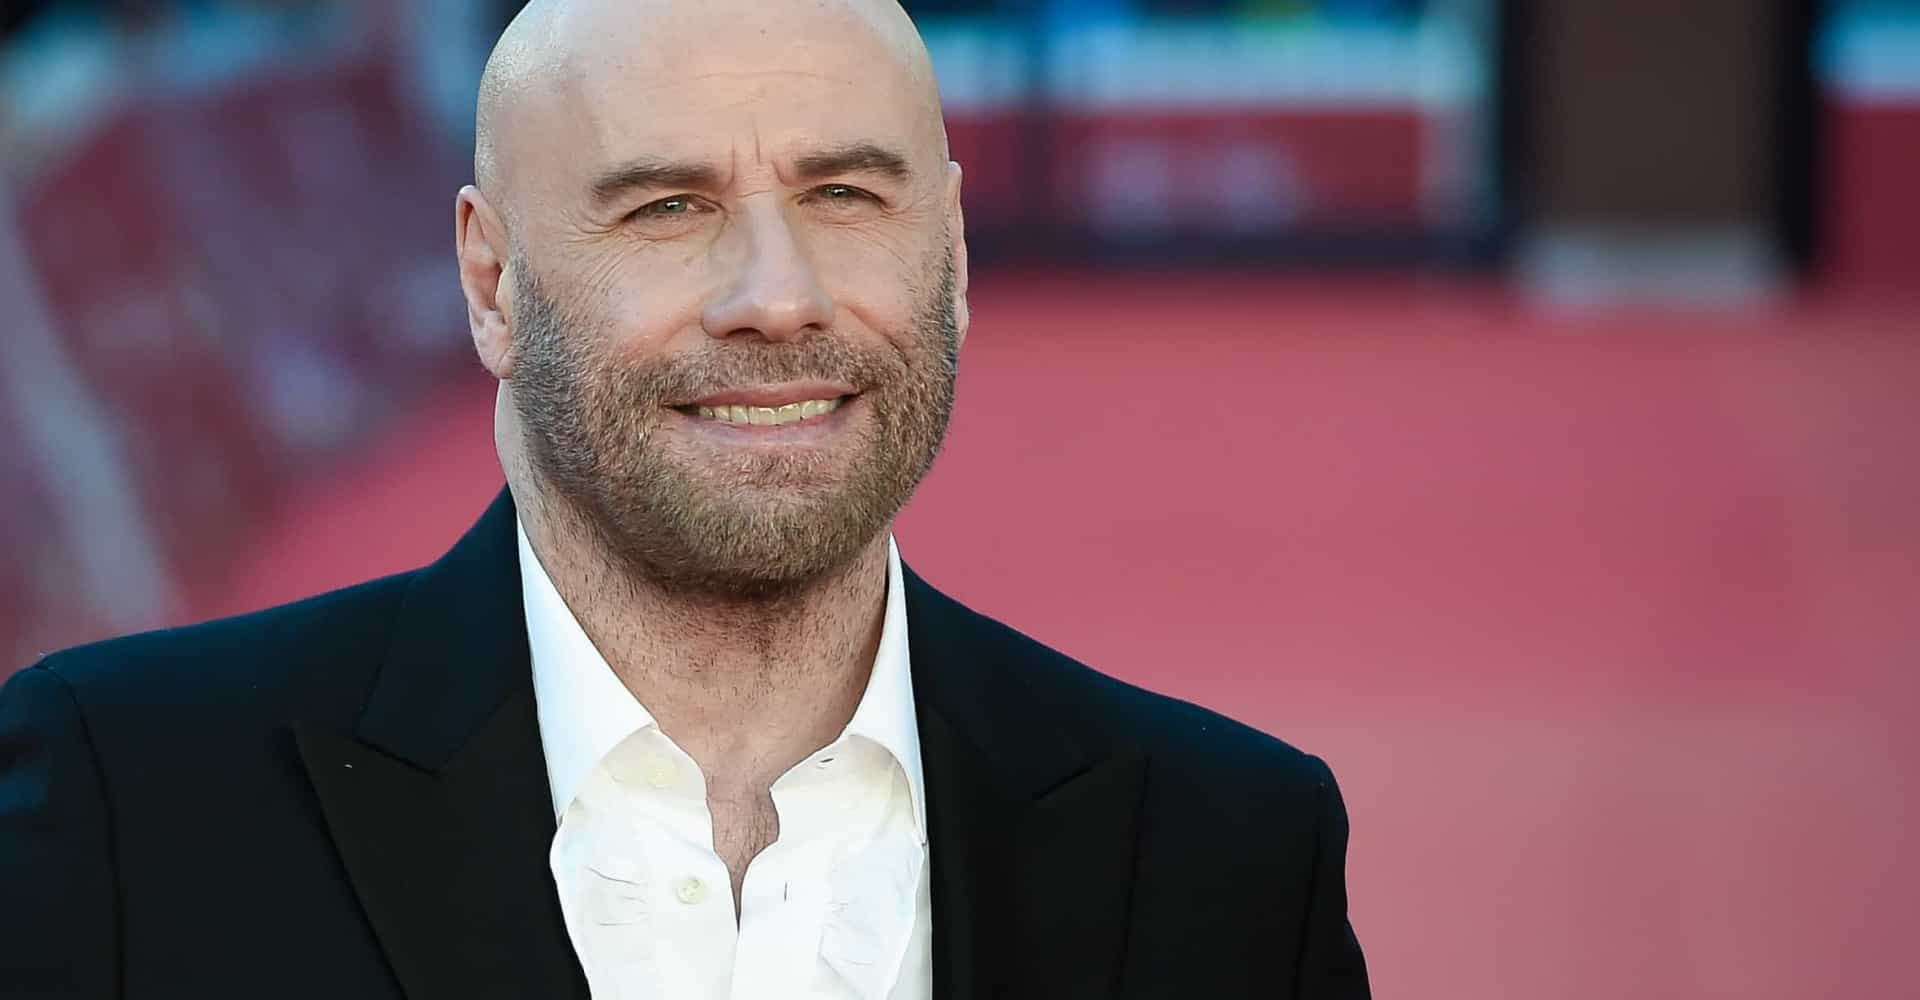 John Travolta: 66 years of style and seduction